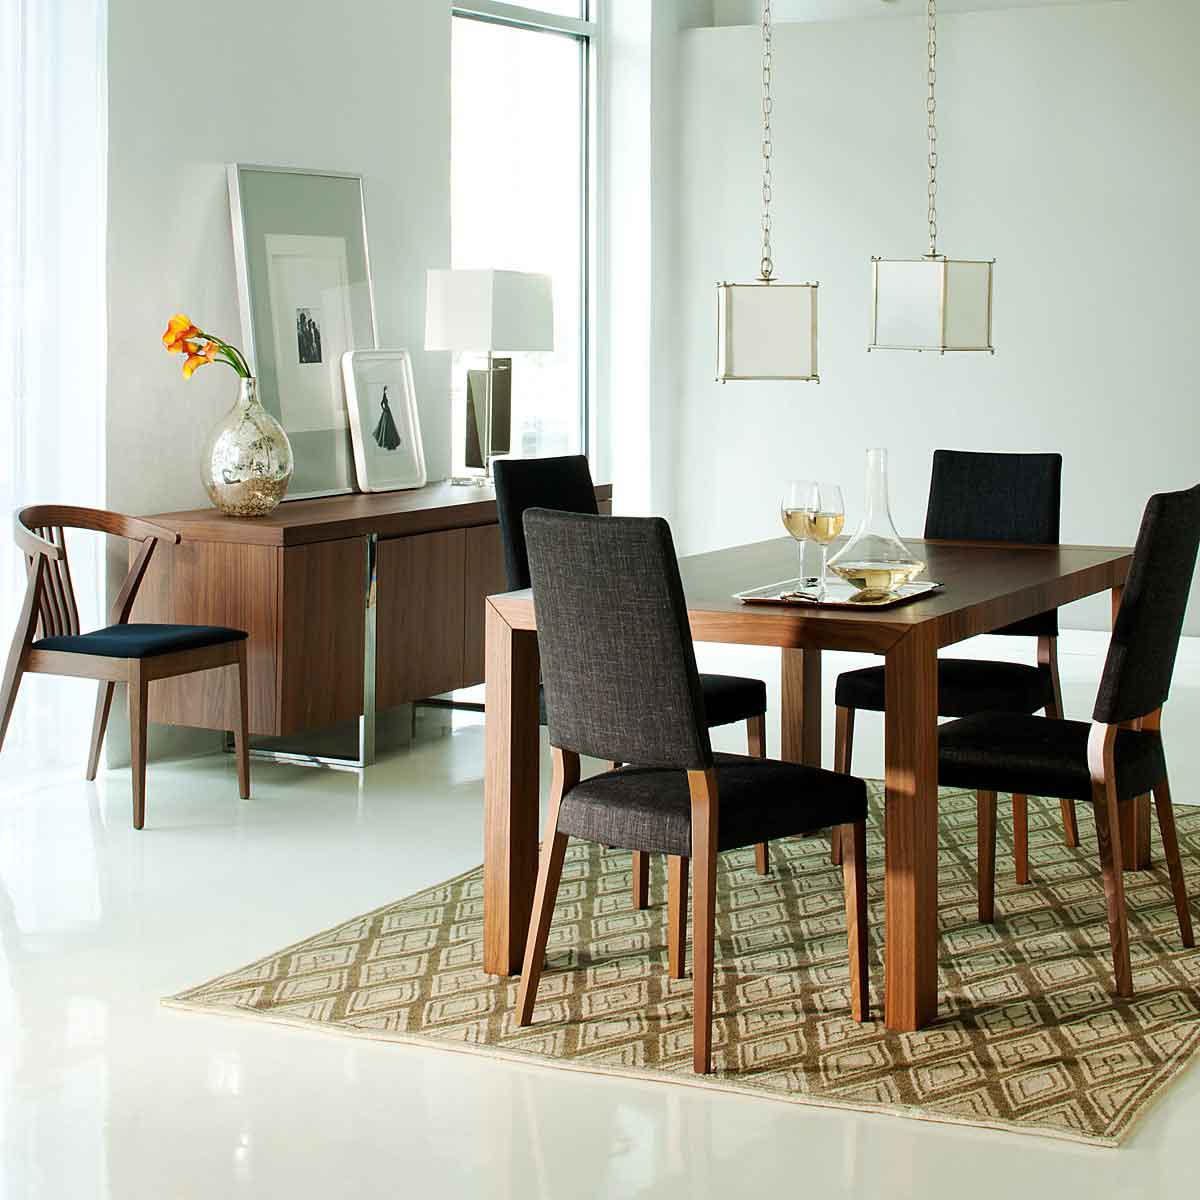 Small casual dining room ideas - Interior Design Dining Room Ideas